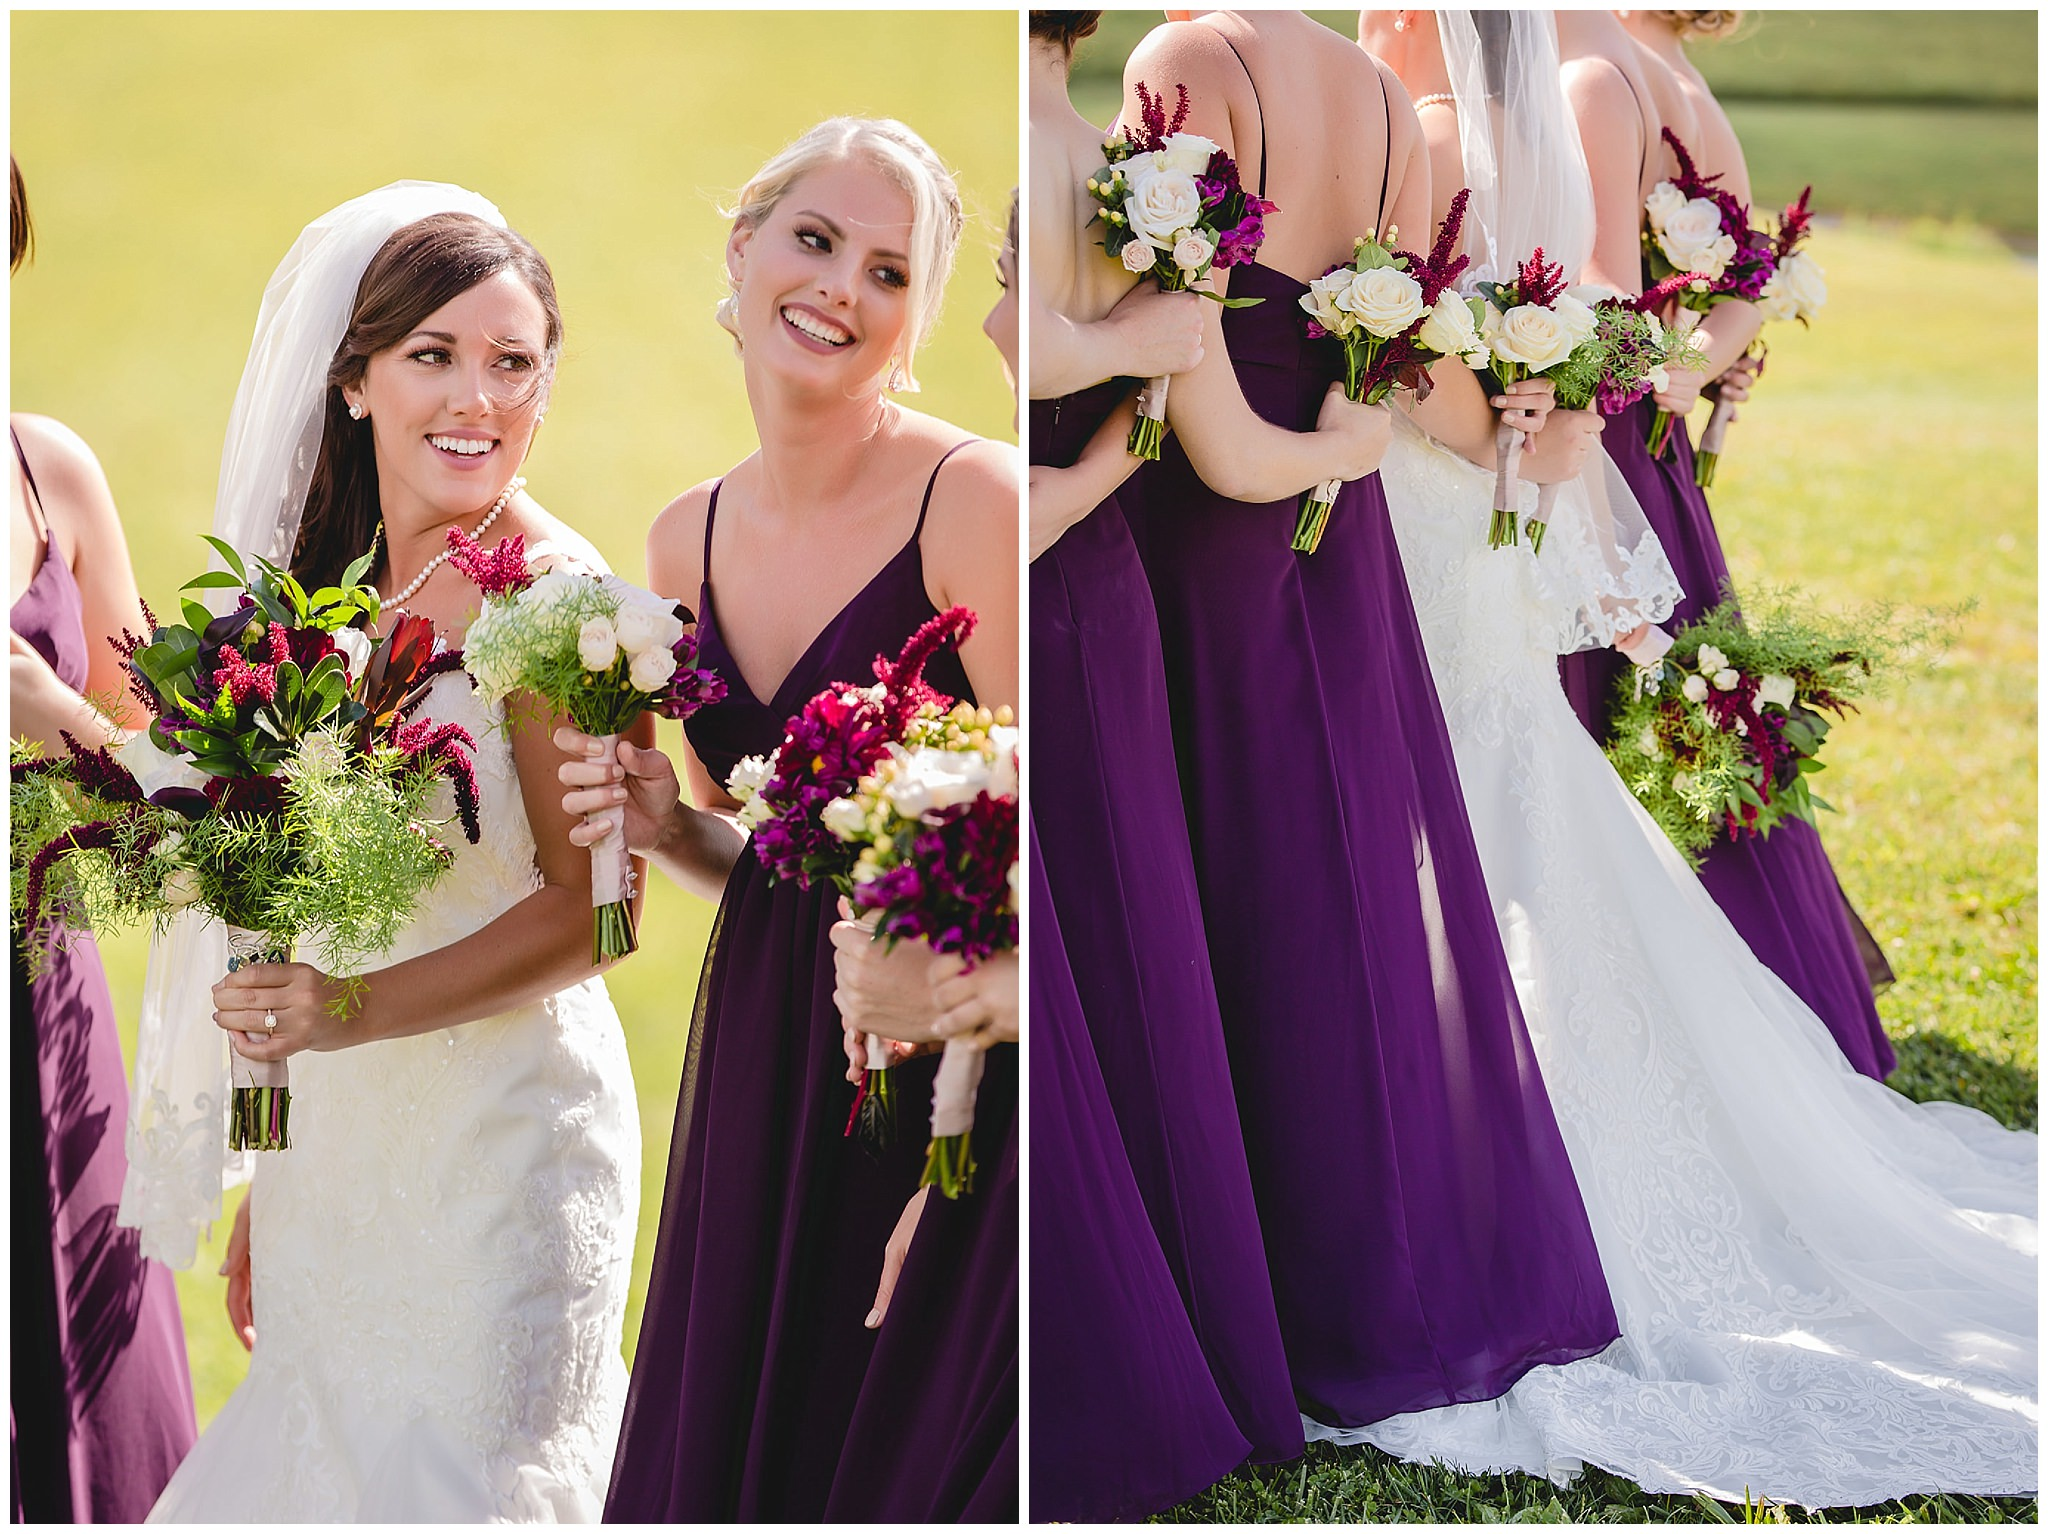 Bride laughs with bridesmaids while holding bouquets by Events by Jarrod